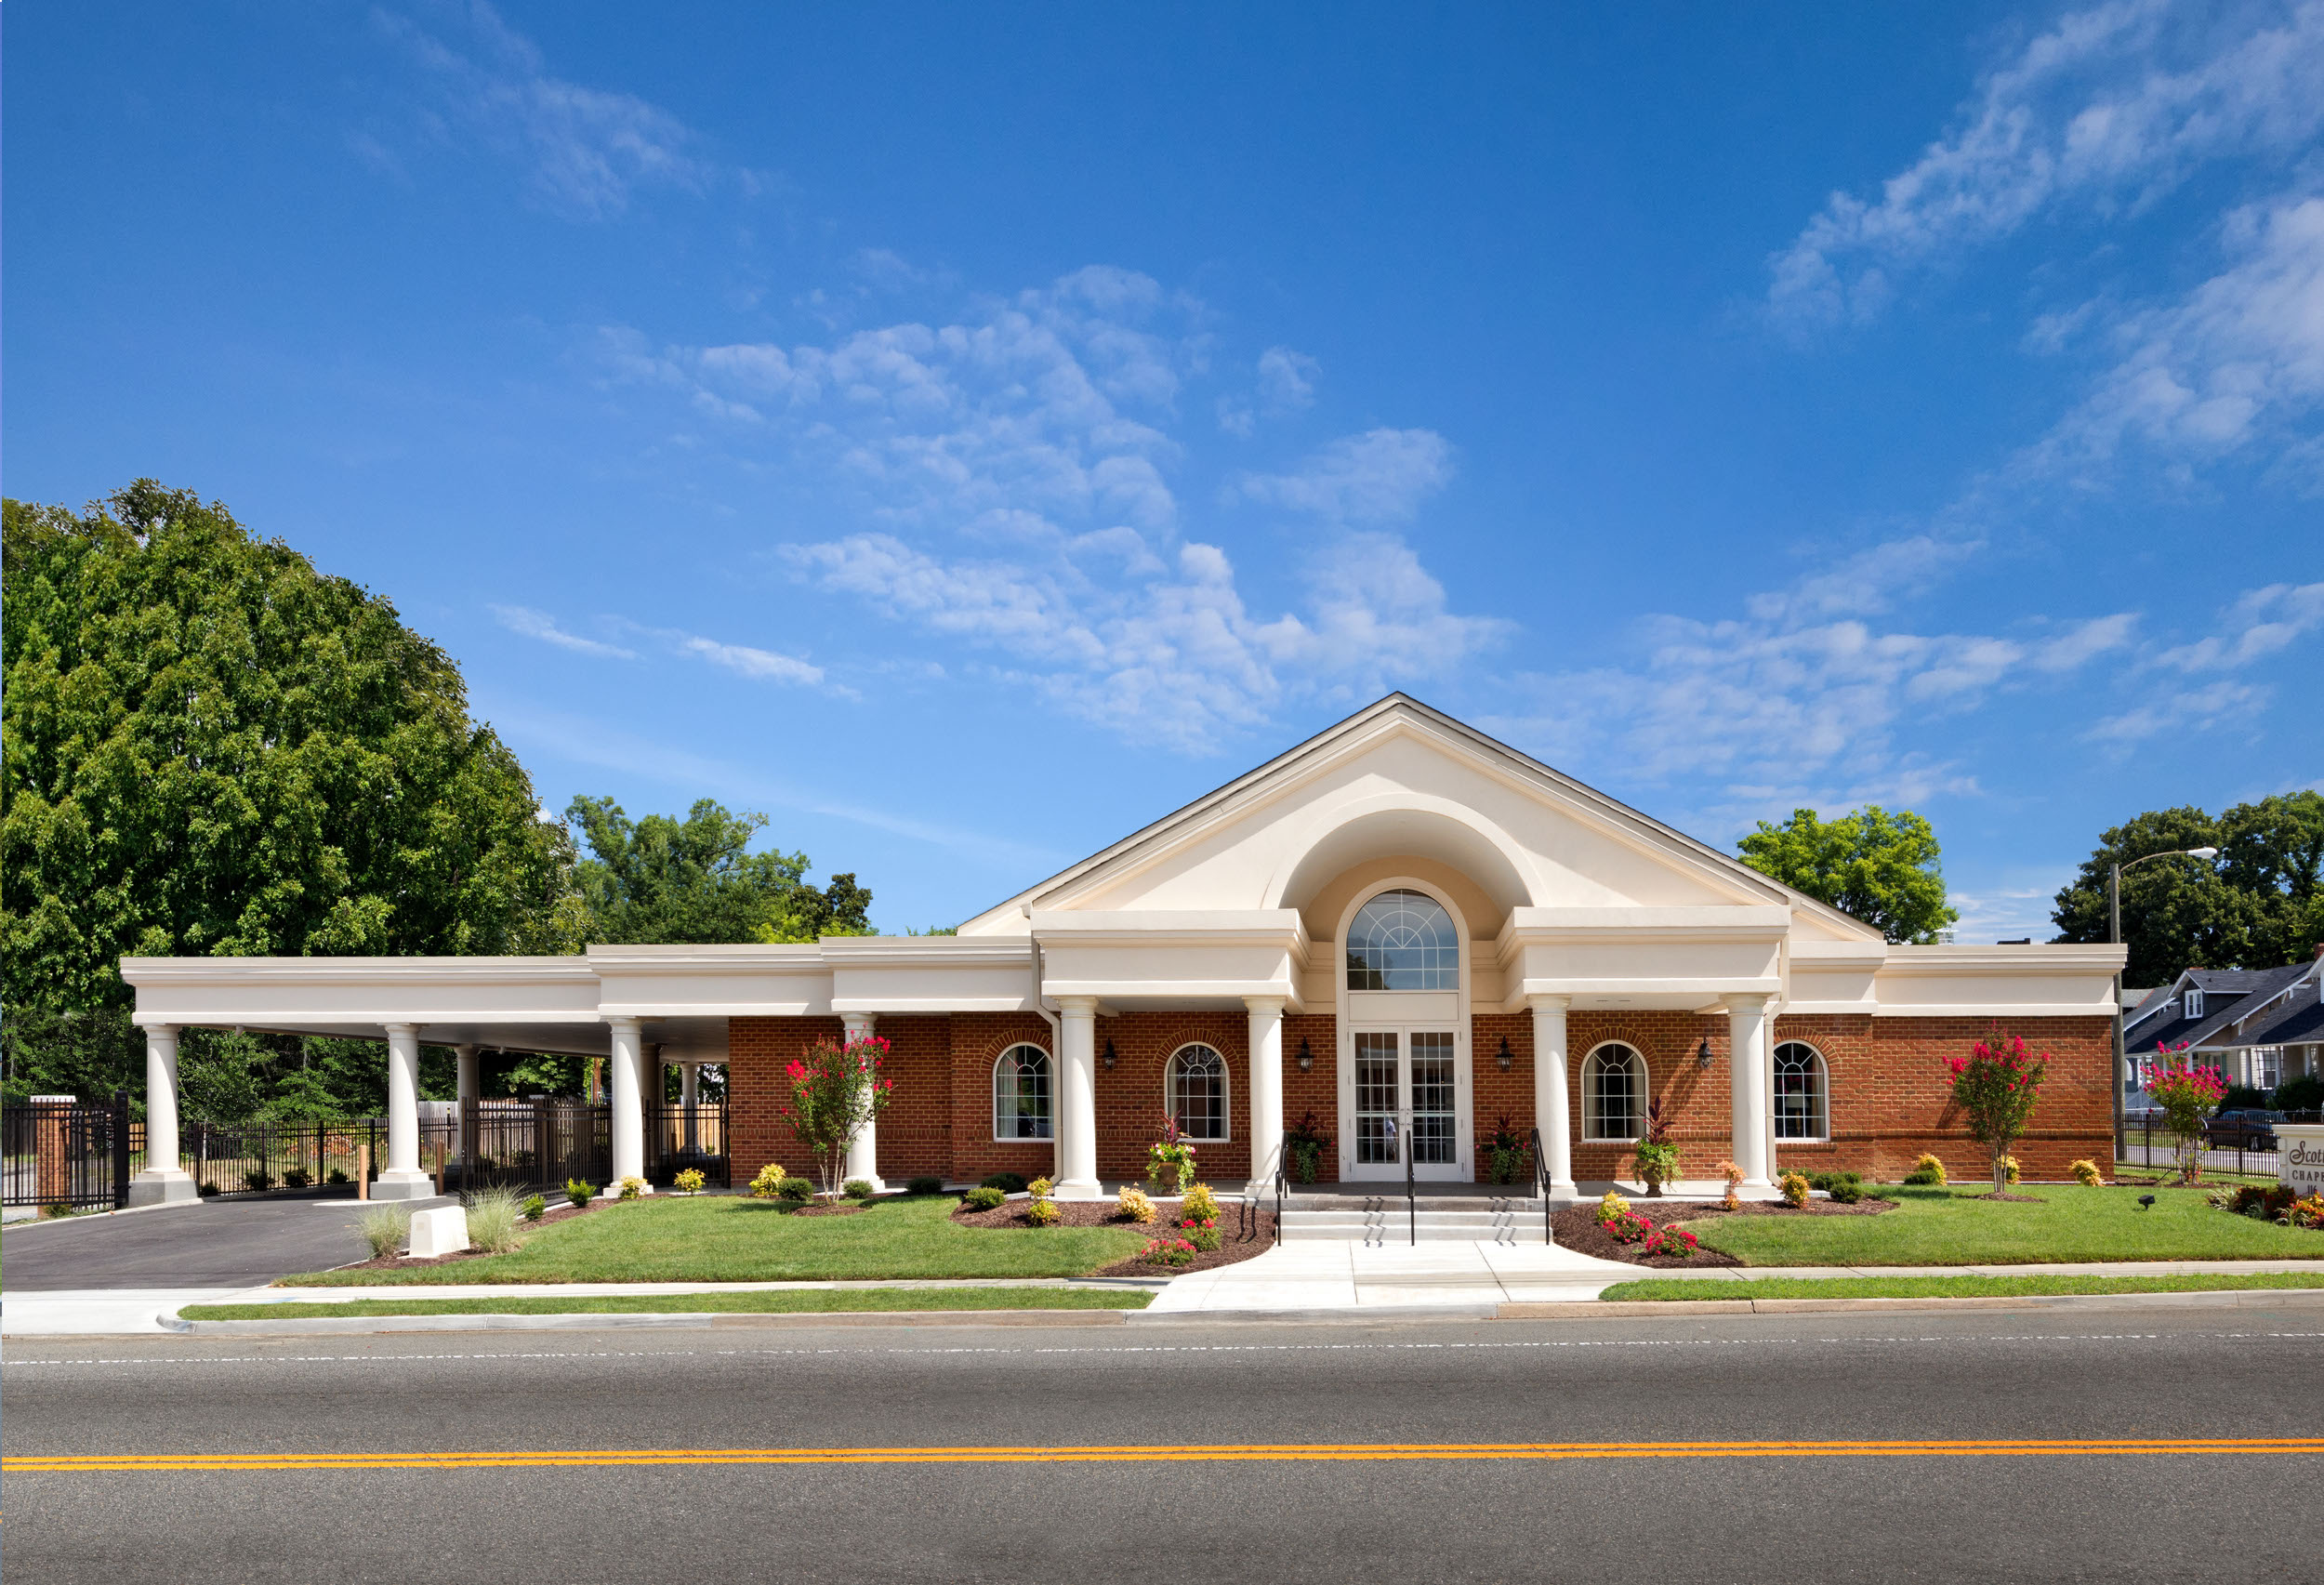 Jm Wilkerson Funeral Home